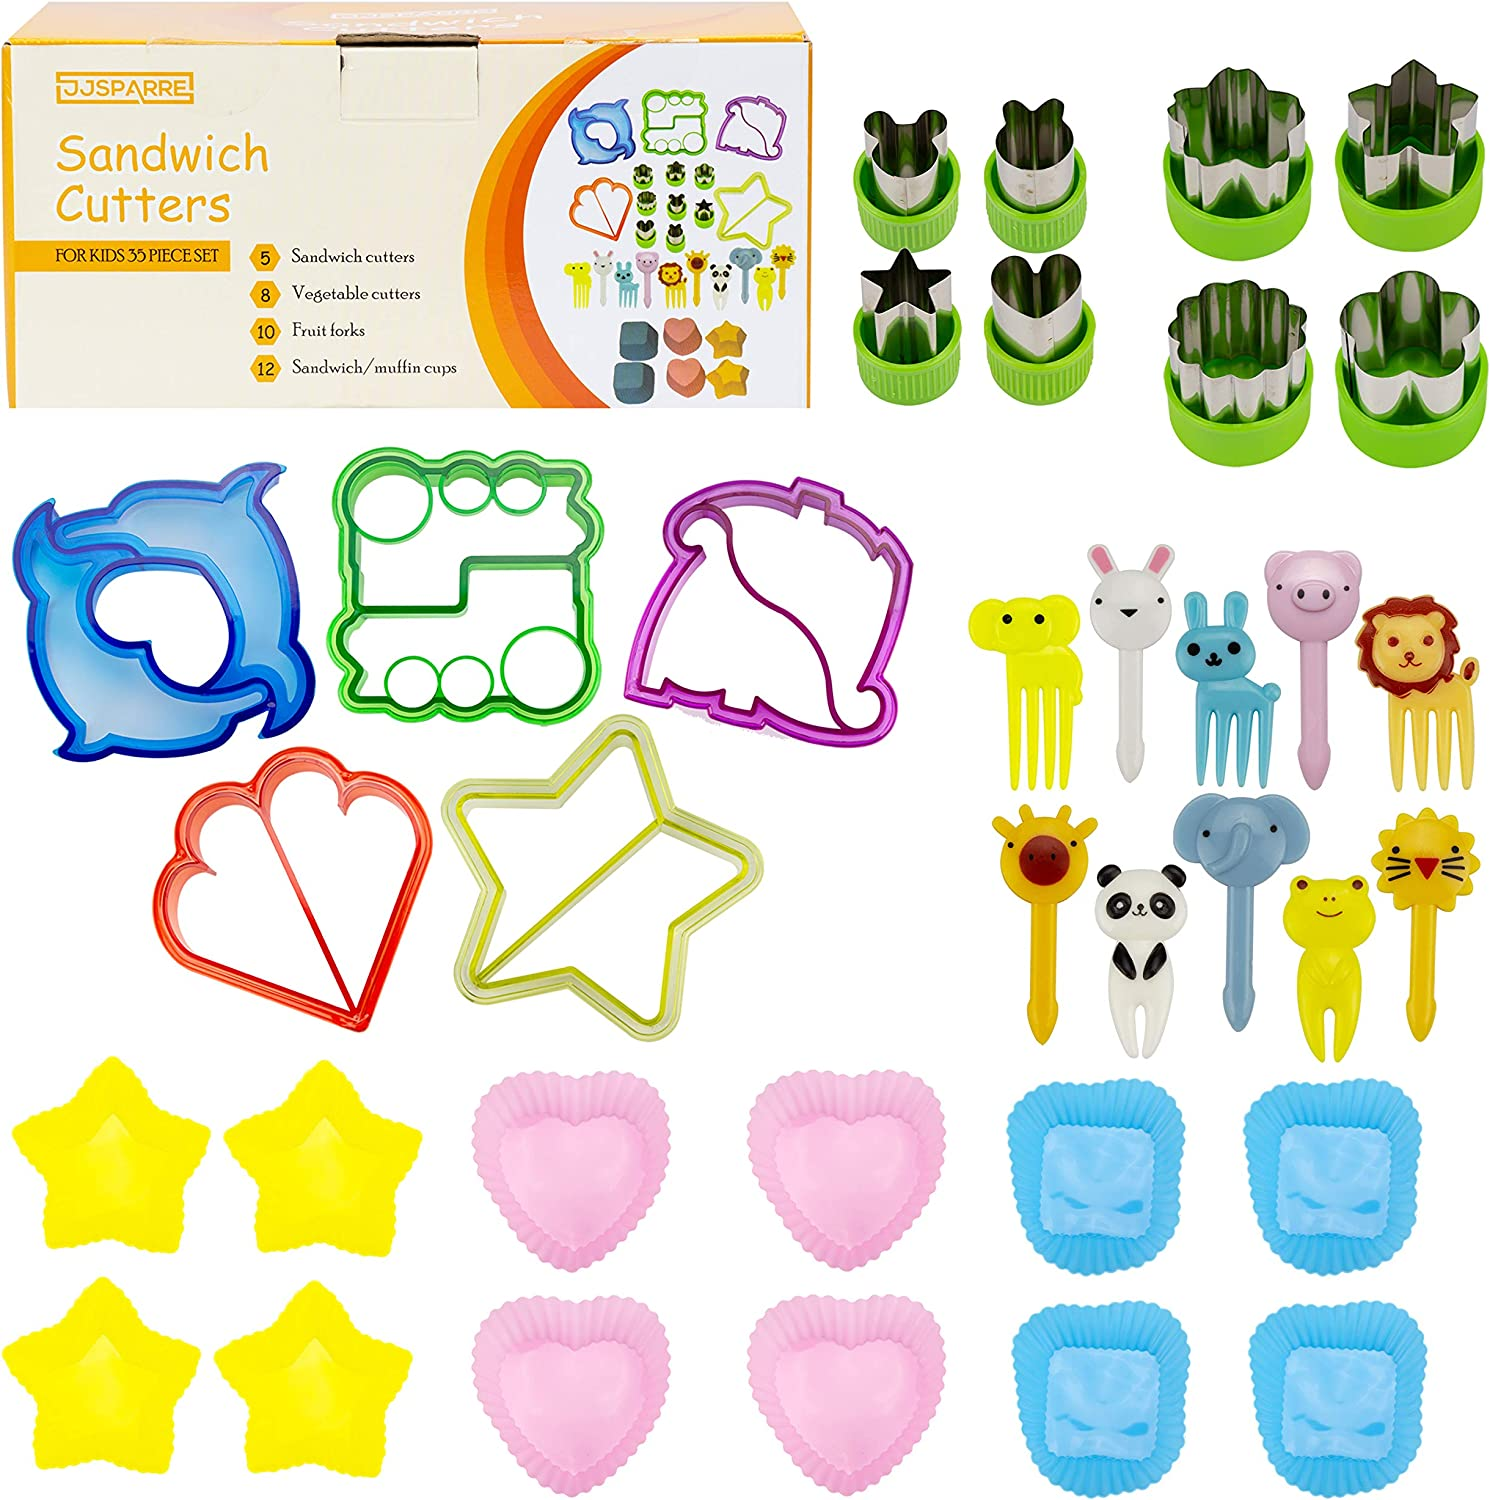 Sandwich Cutters for Kids, Mini Forks, Vegetable Cutter Set, Muffin cups (35 Piece Set) Fun and Cute Shaped Cookie Cutter or Bread Cutter - Large Food Cutter Set for Kids Lunch Boxes